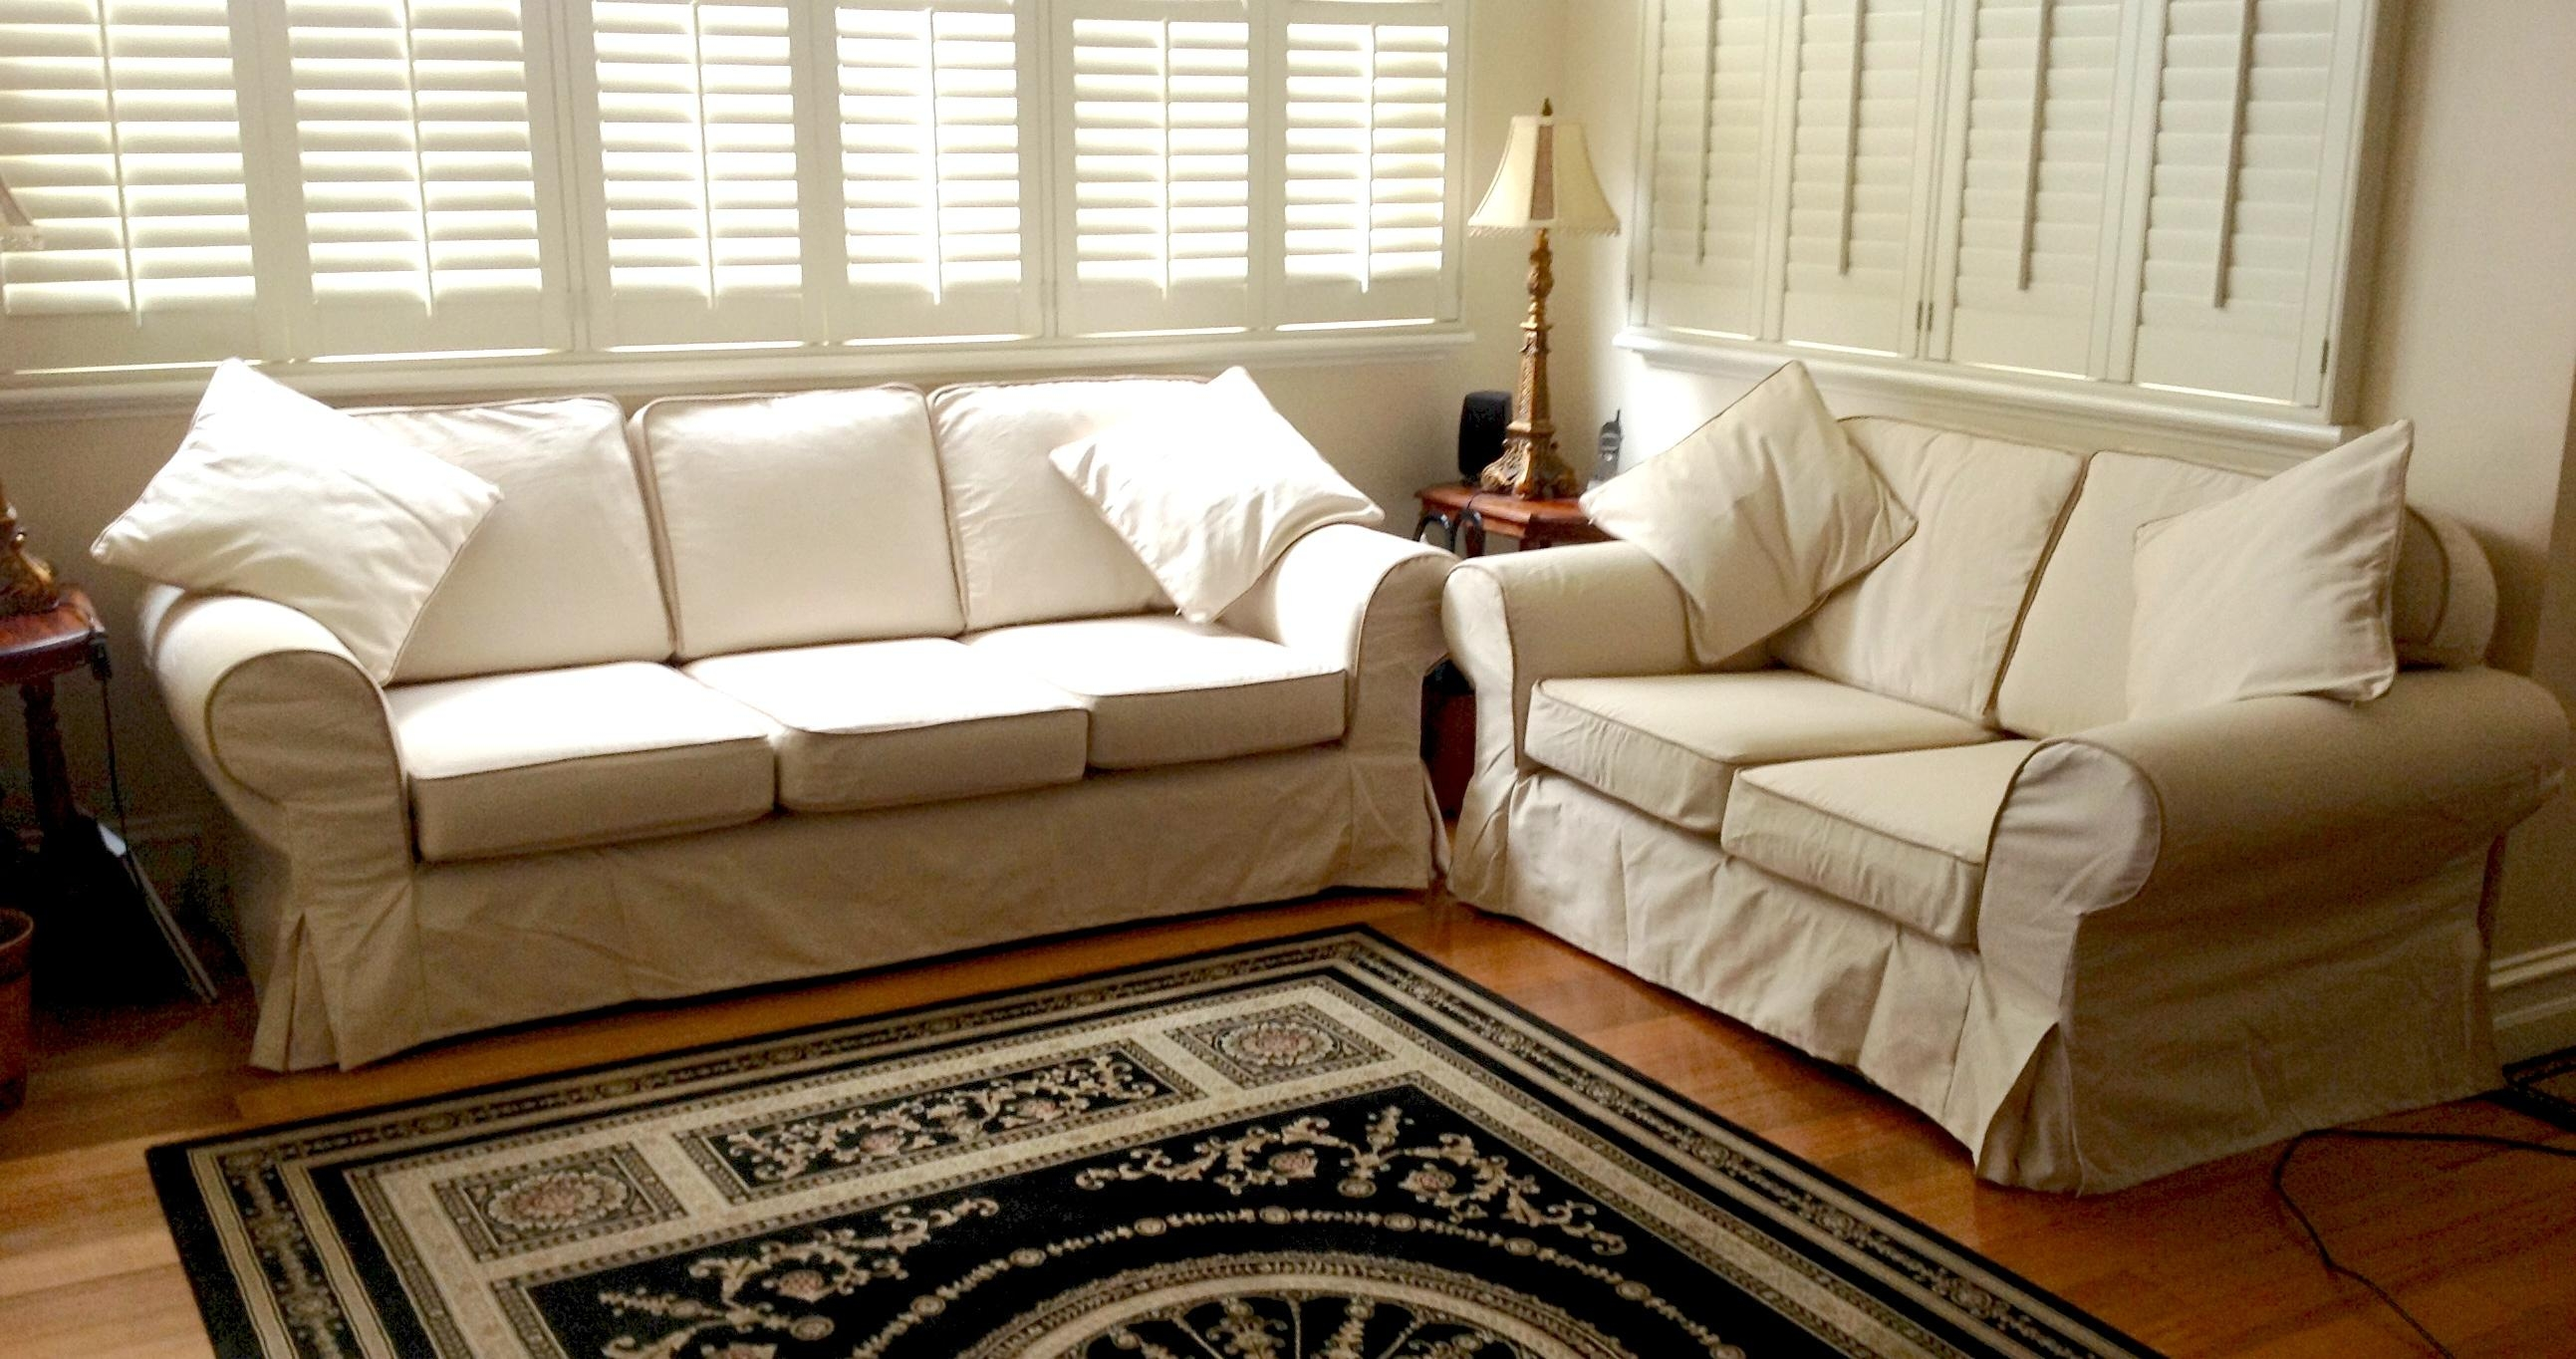 Custom Slipcovers And Couch Cover For Any Sofa Online Pertaining To Covers For Sofas And Chairs (Image 6 of 20)